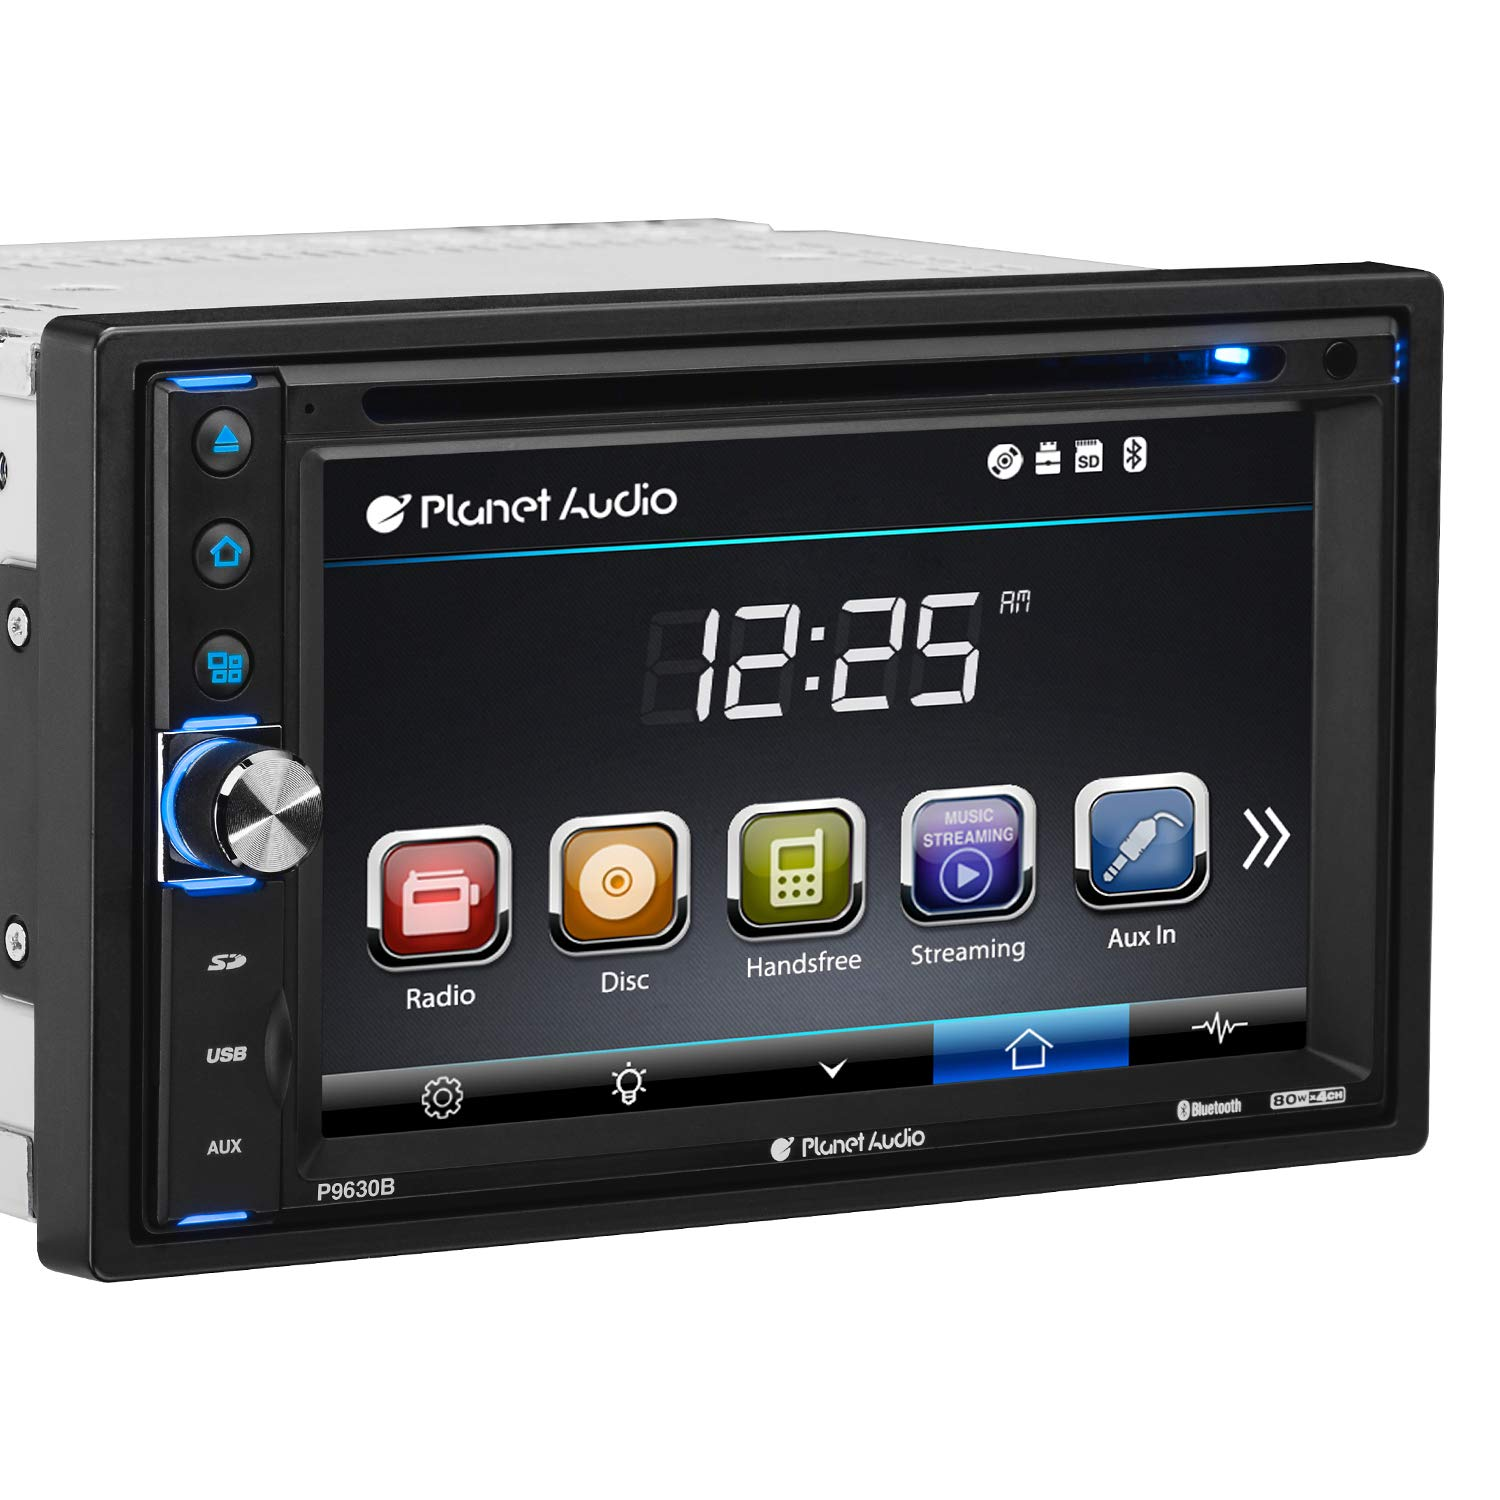 Planet Audio P9630B Double Din, Touchscreen, Bluetooth, DVD/CD/MP3/USB/SD AM/FM Car Stereo, 6.2 Inch Digital LCD Monitor, Wireless Remote by BOSS Audio Systems